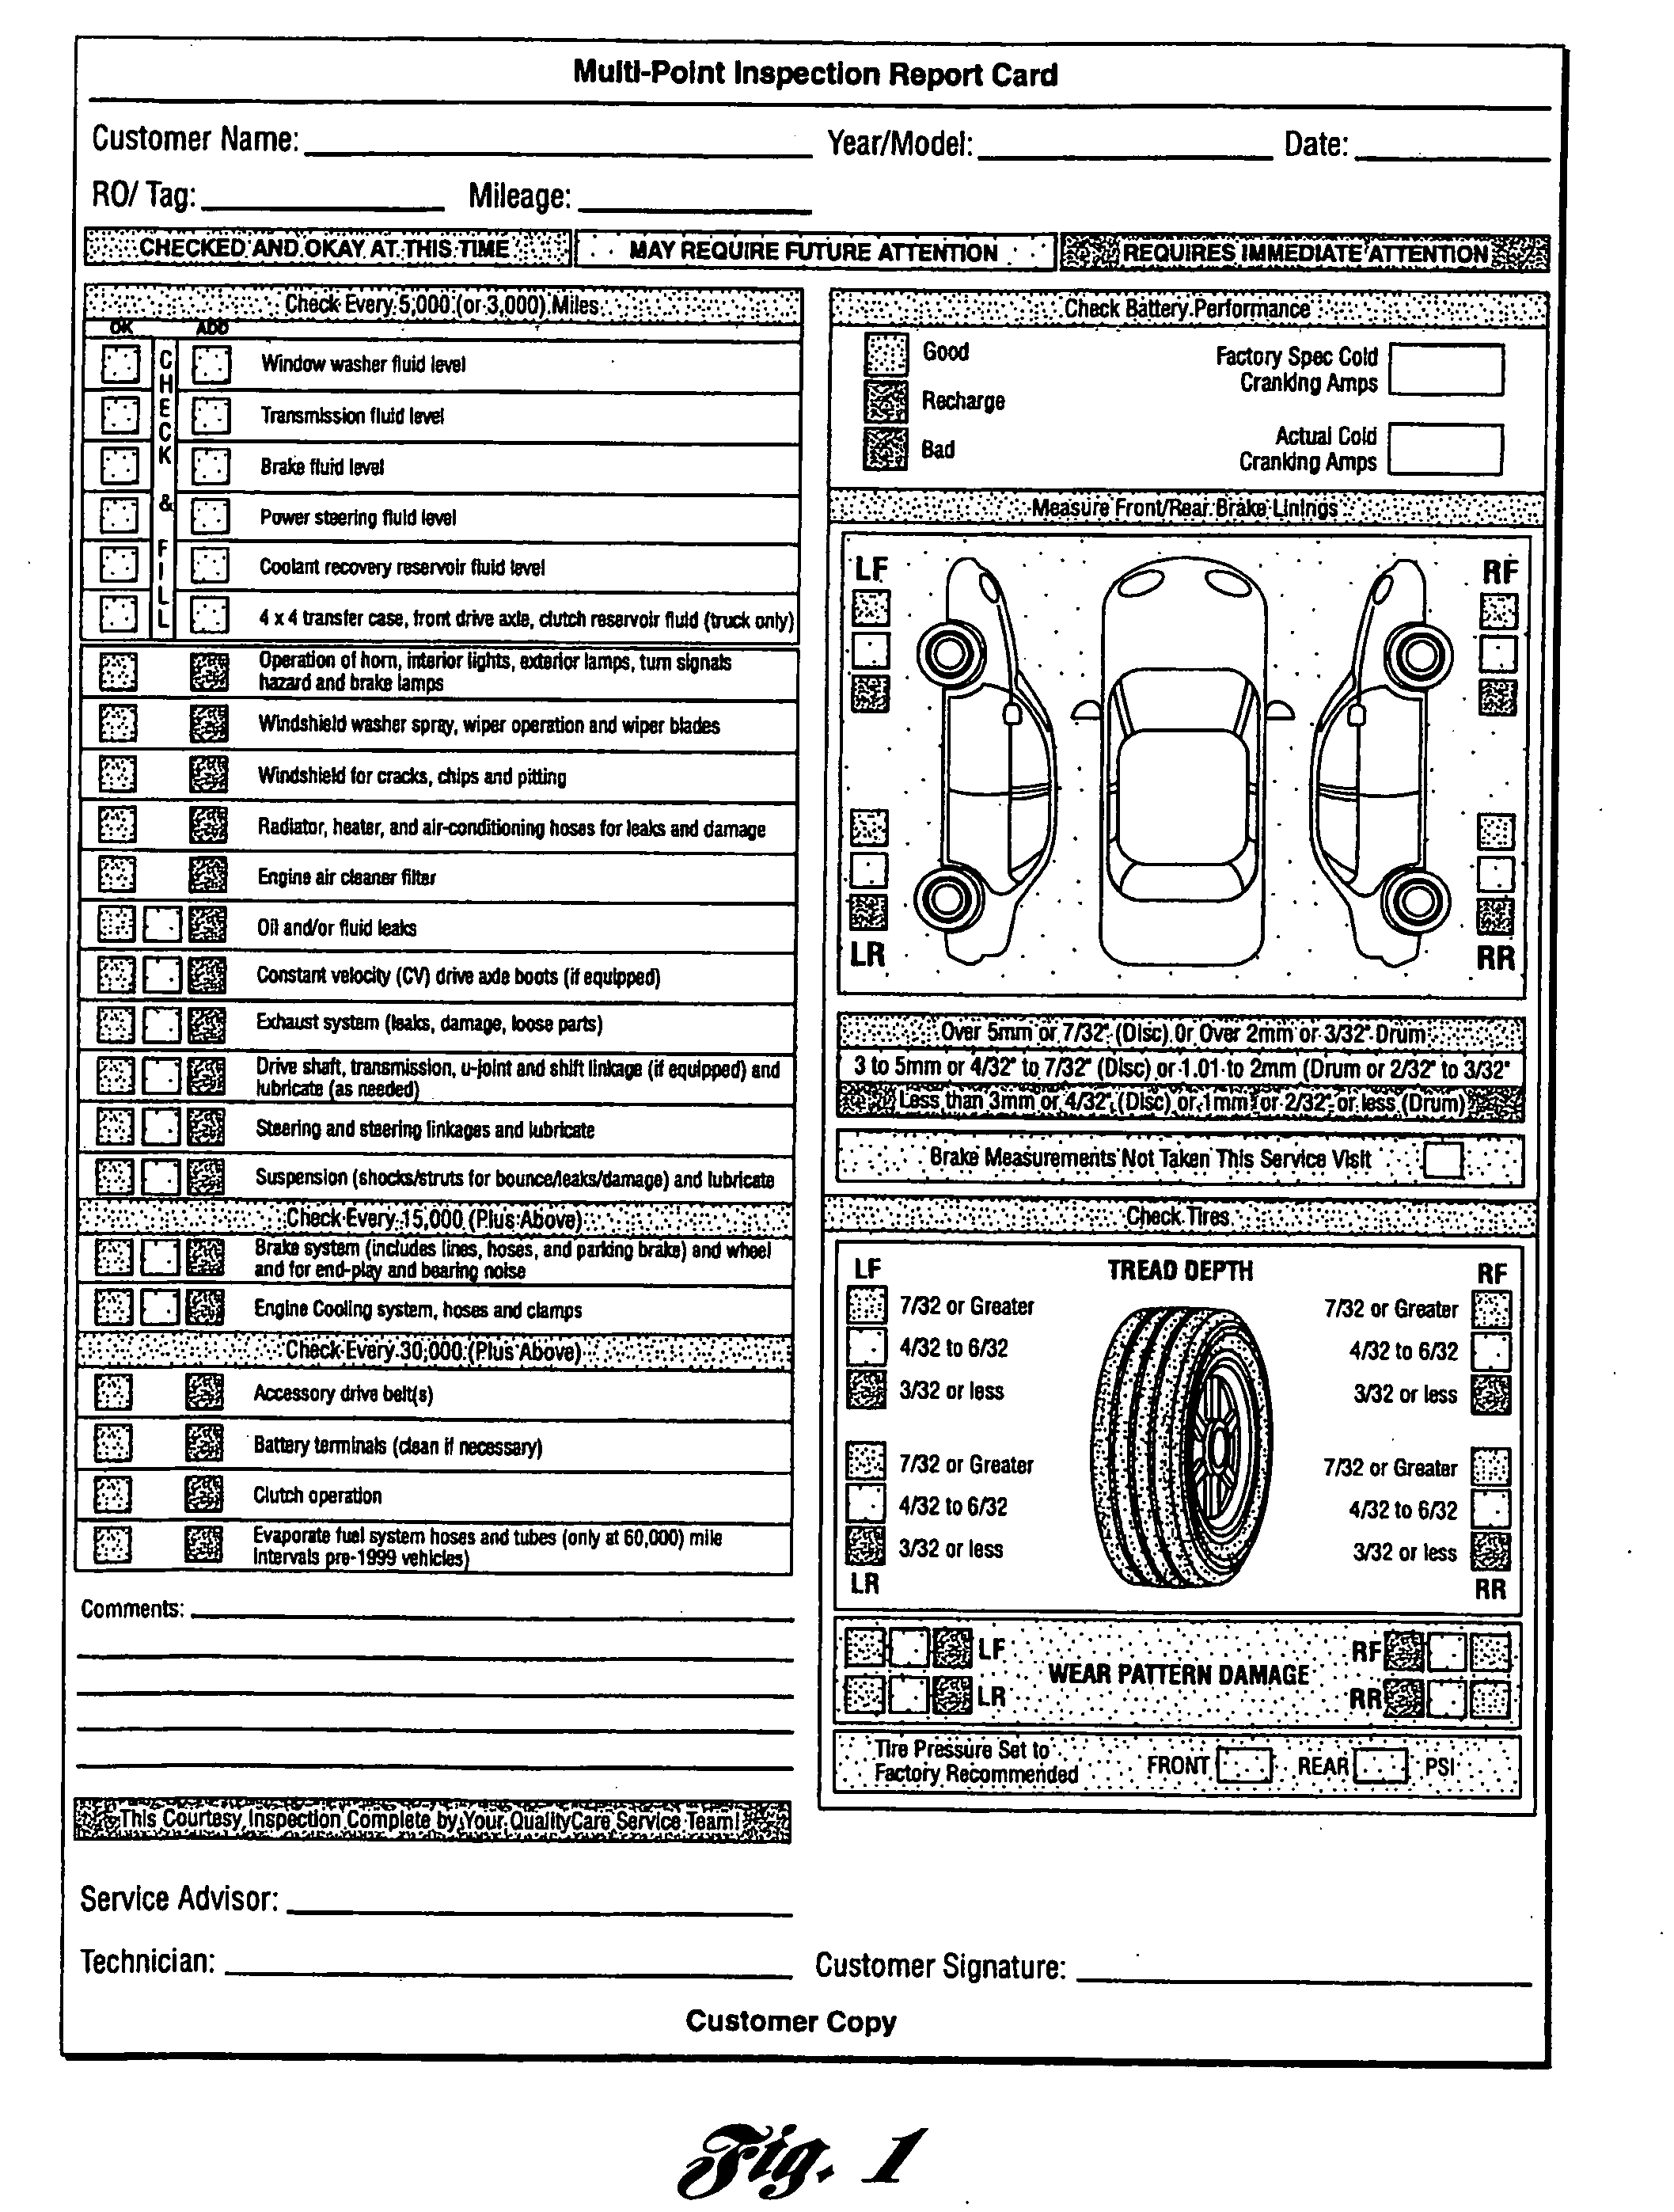 Multipoint Inspection Report Card As Recommendedford Motor In Truck Condition Report Template